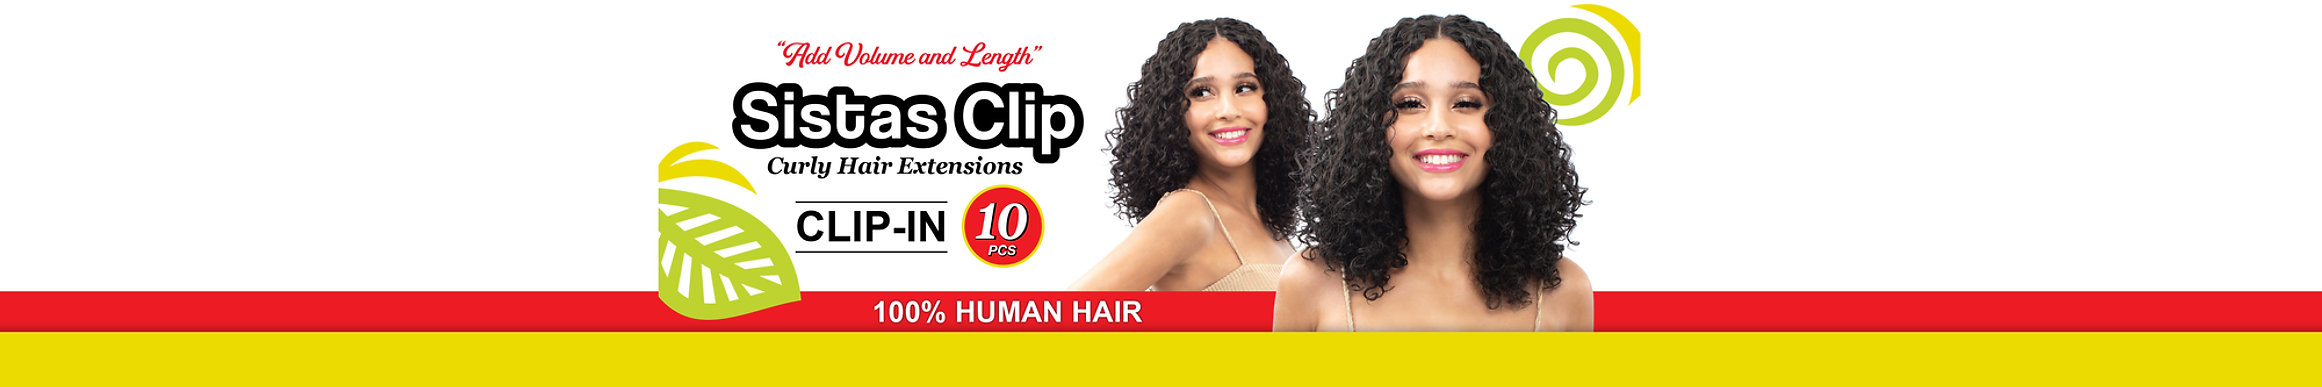 shop-Sistas curl Clip-in 10pcs.jpg